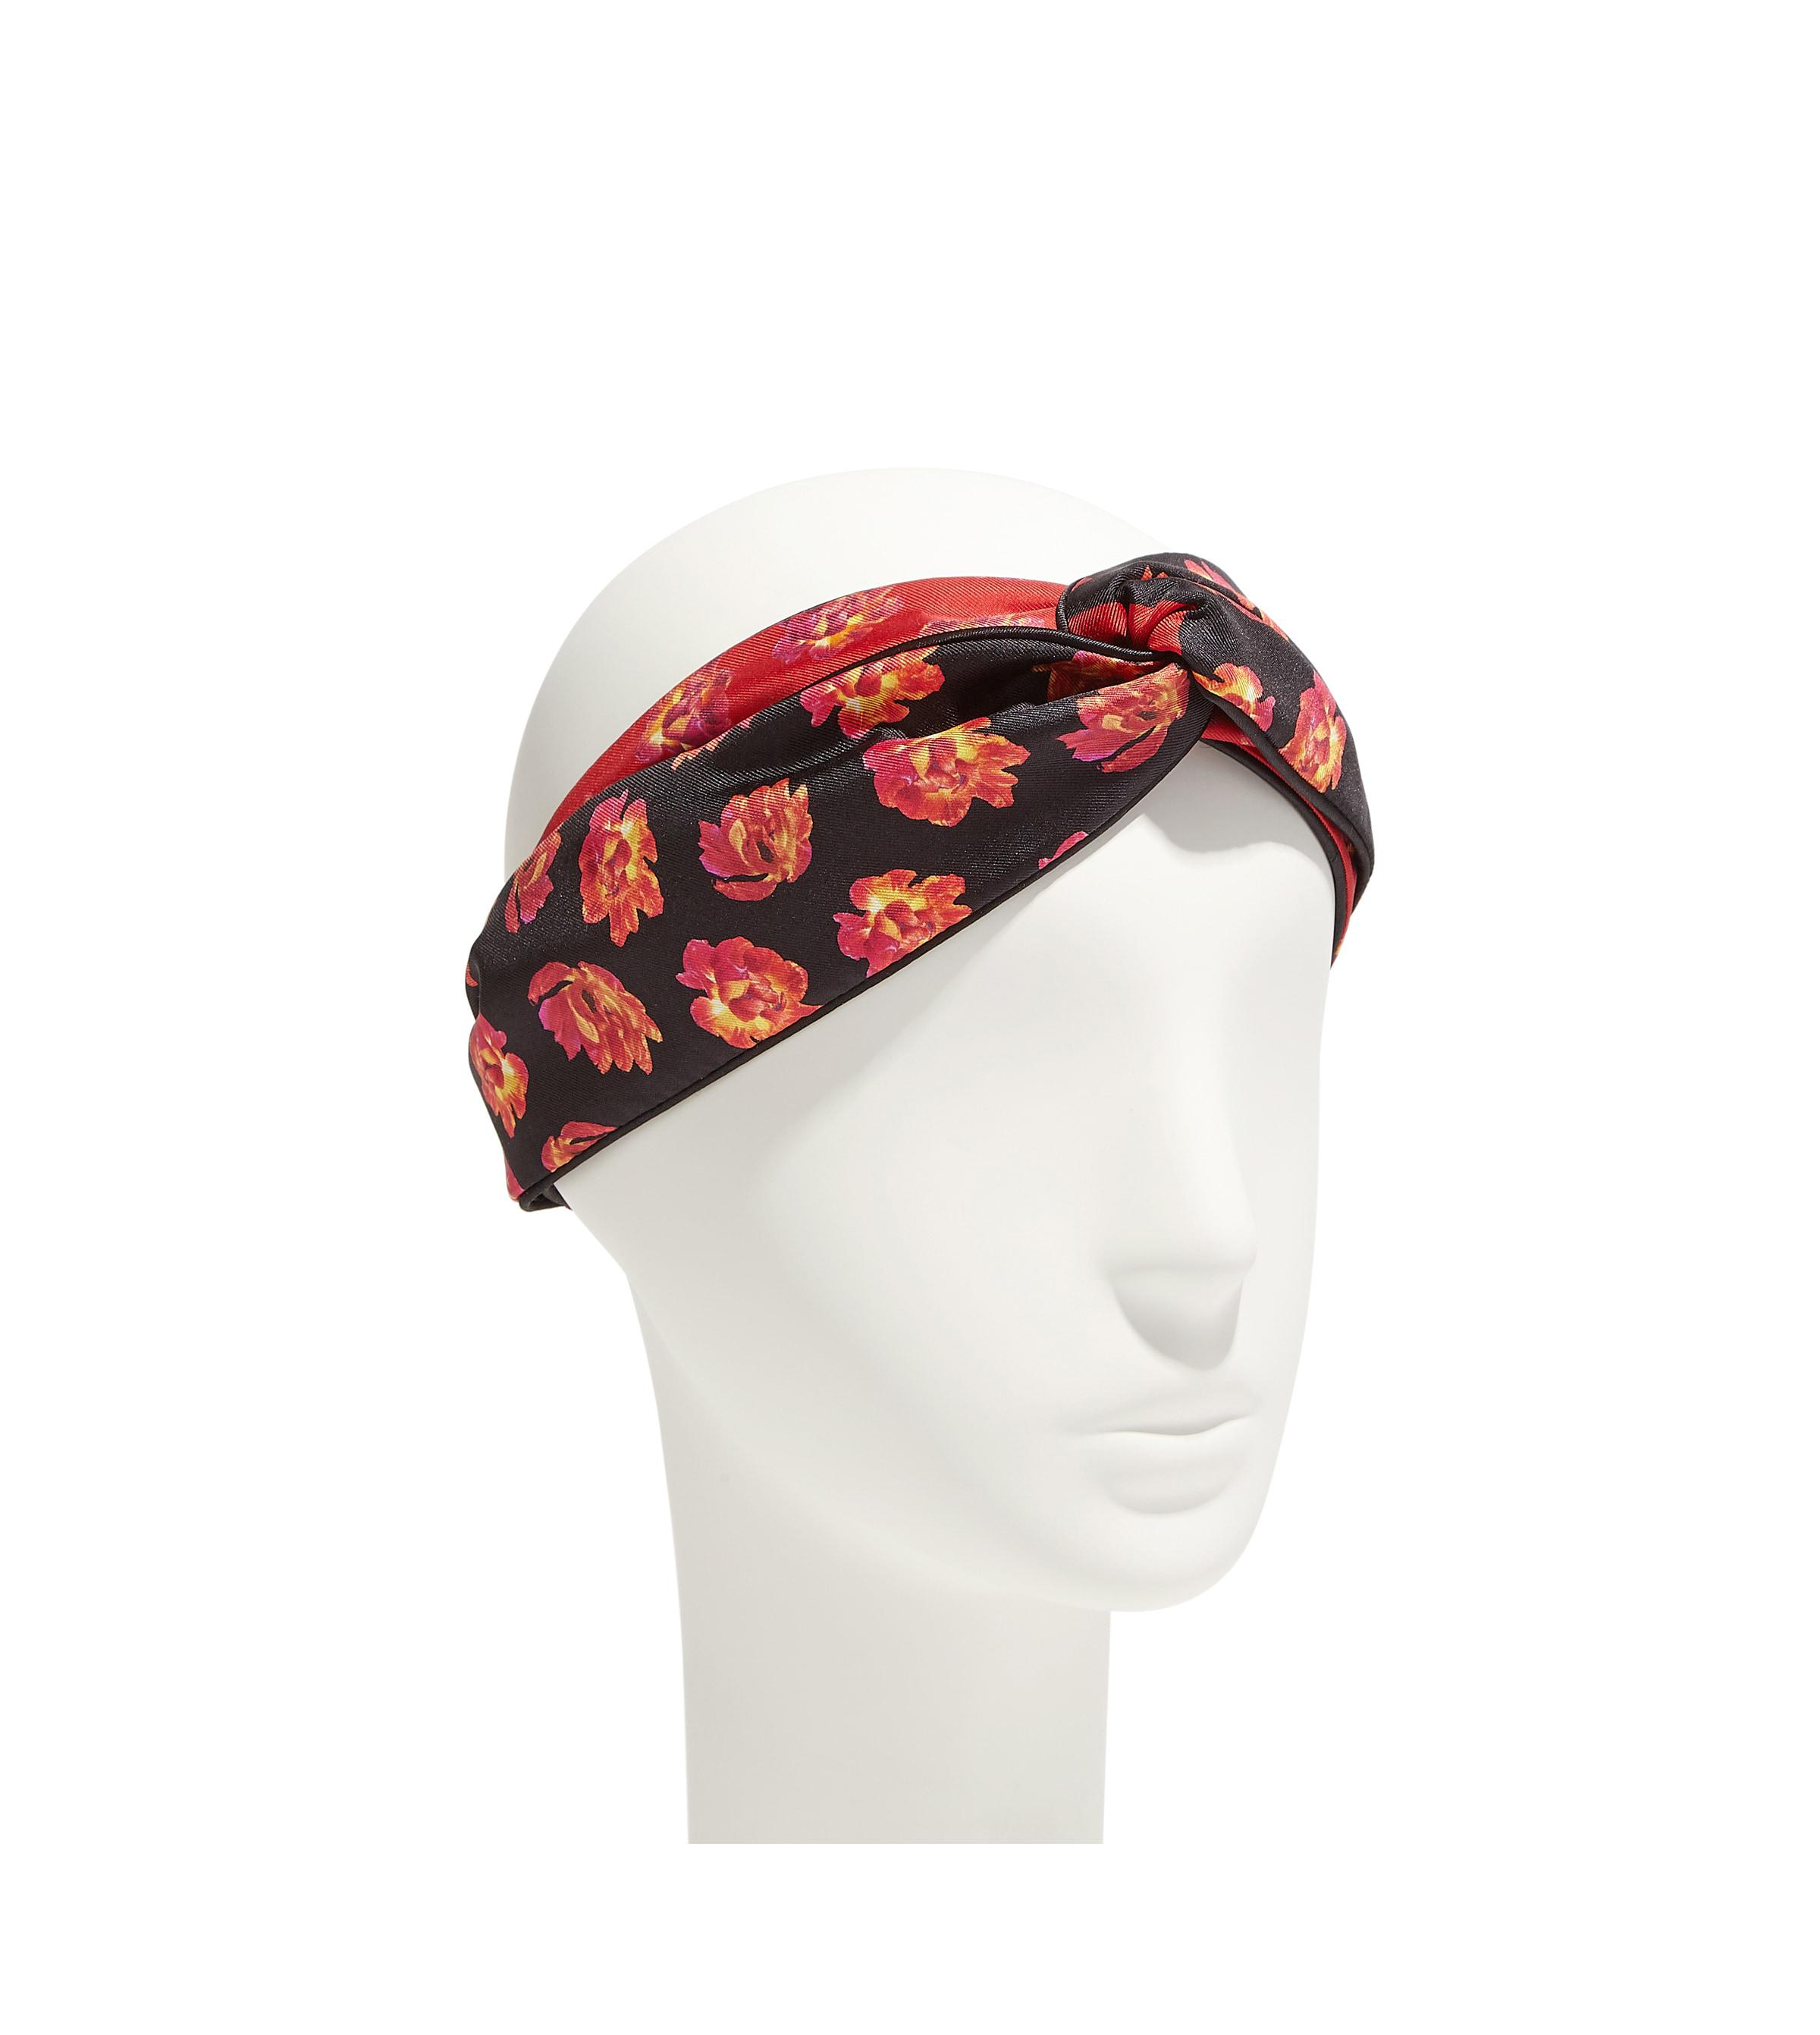 Lyst Ferragamo Silk Flower Headband In Red